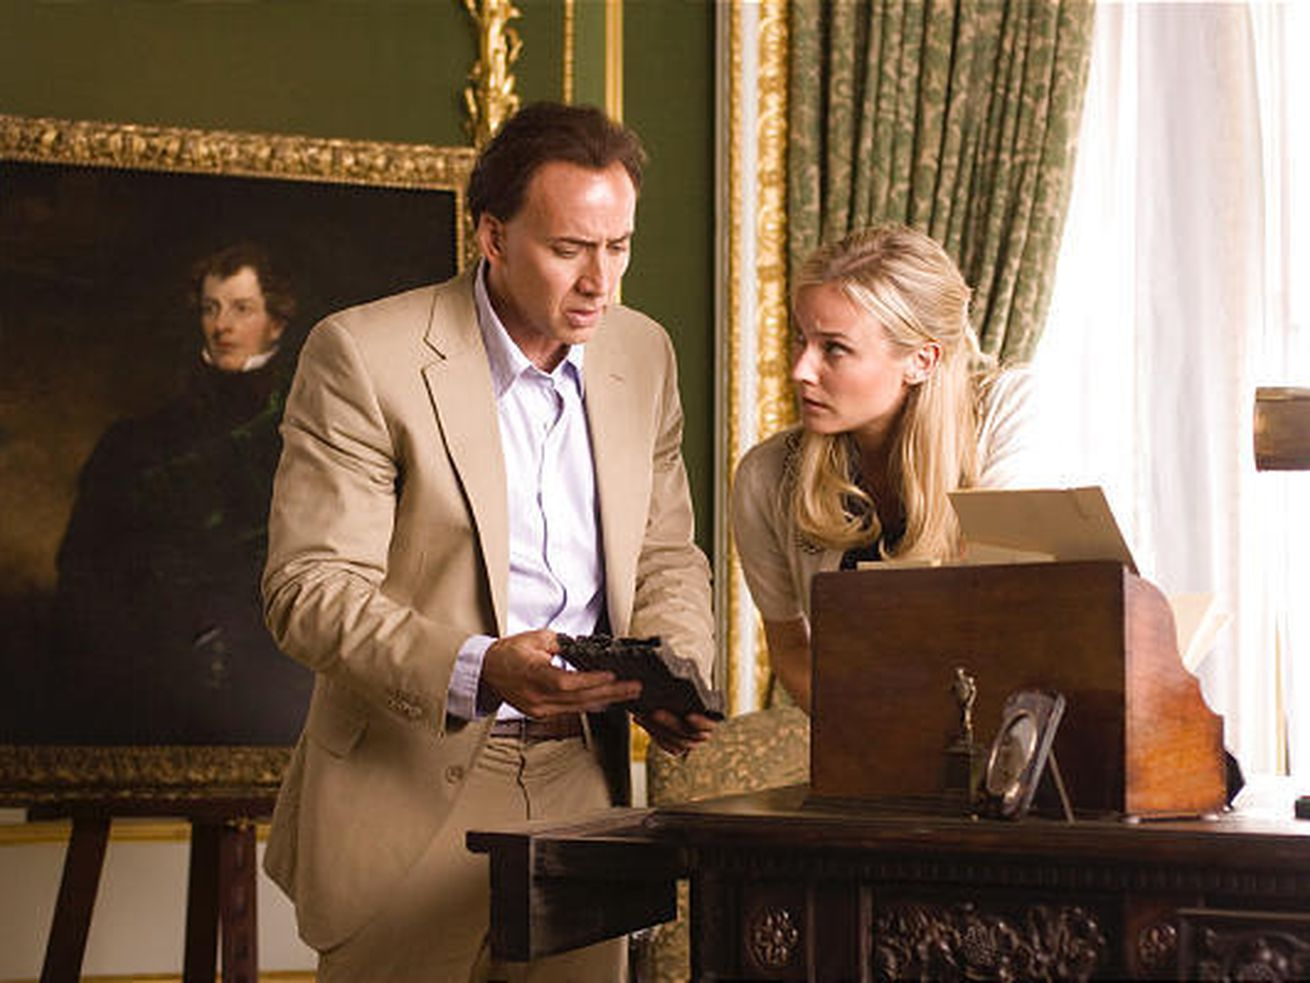 'National Treasure 3' is officially in the works